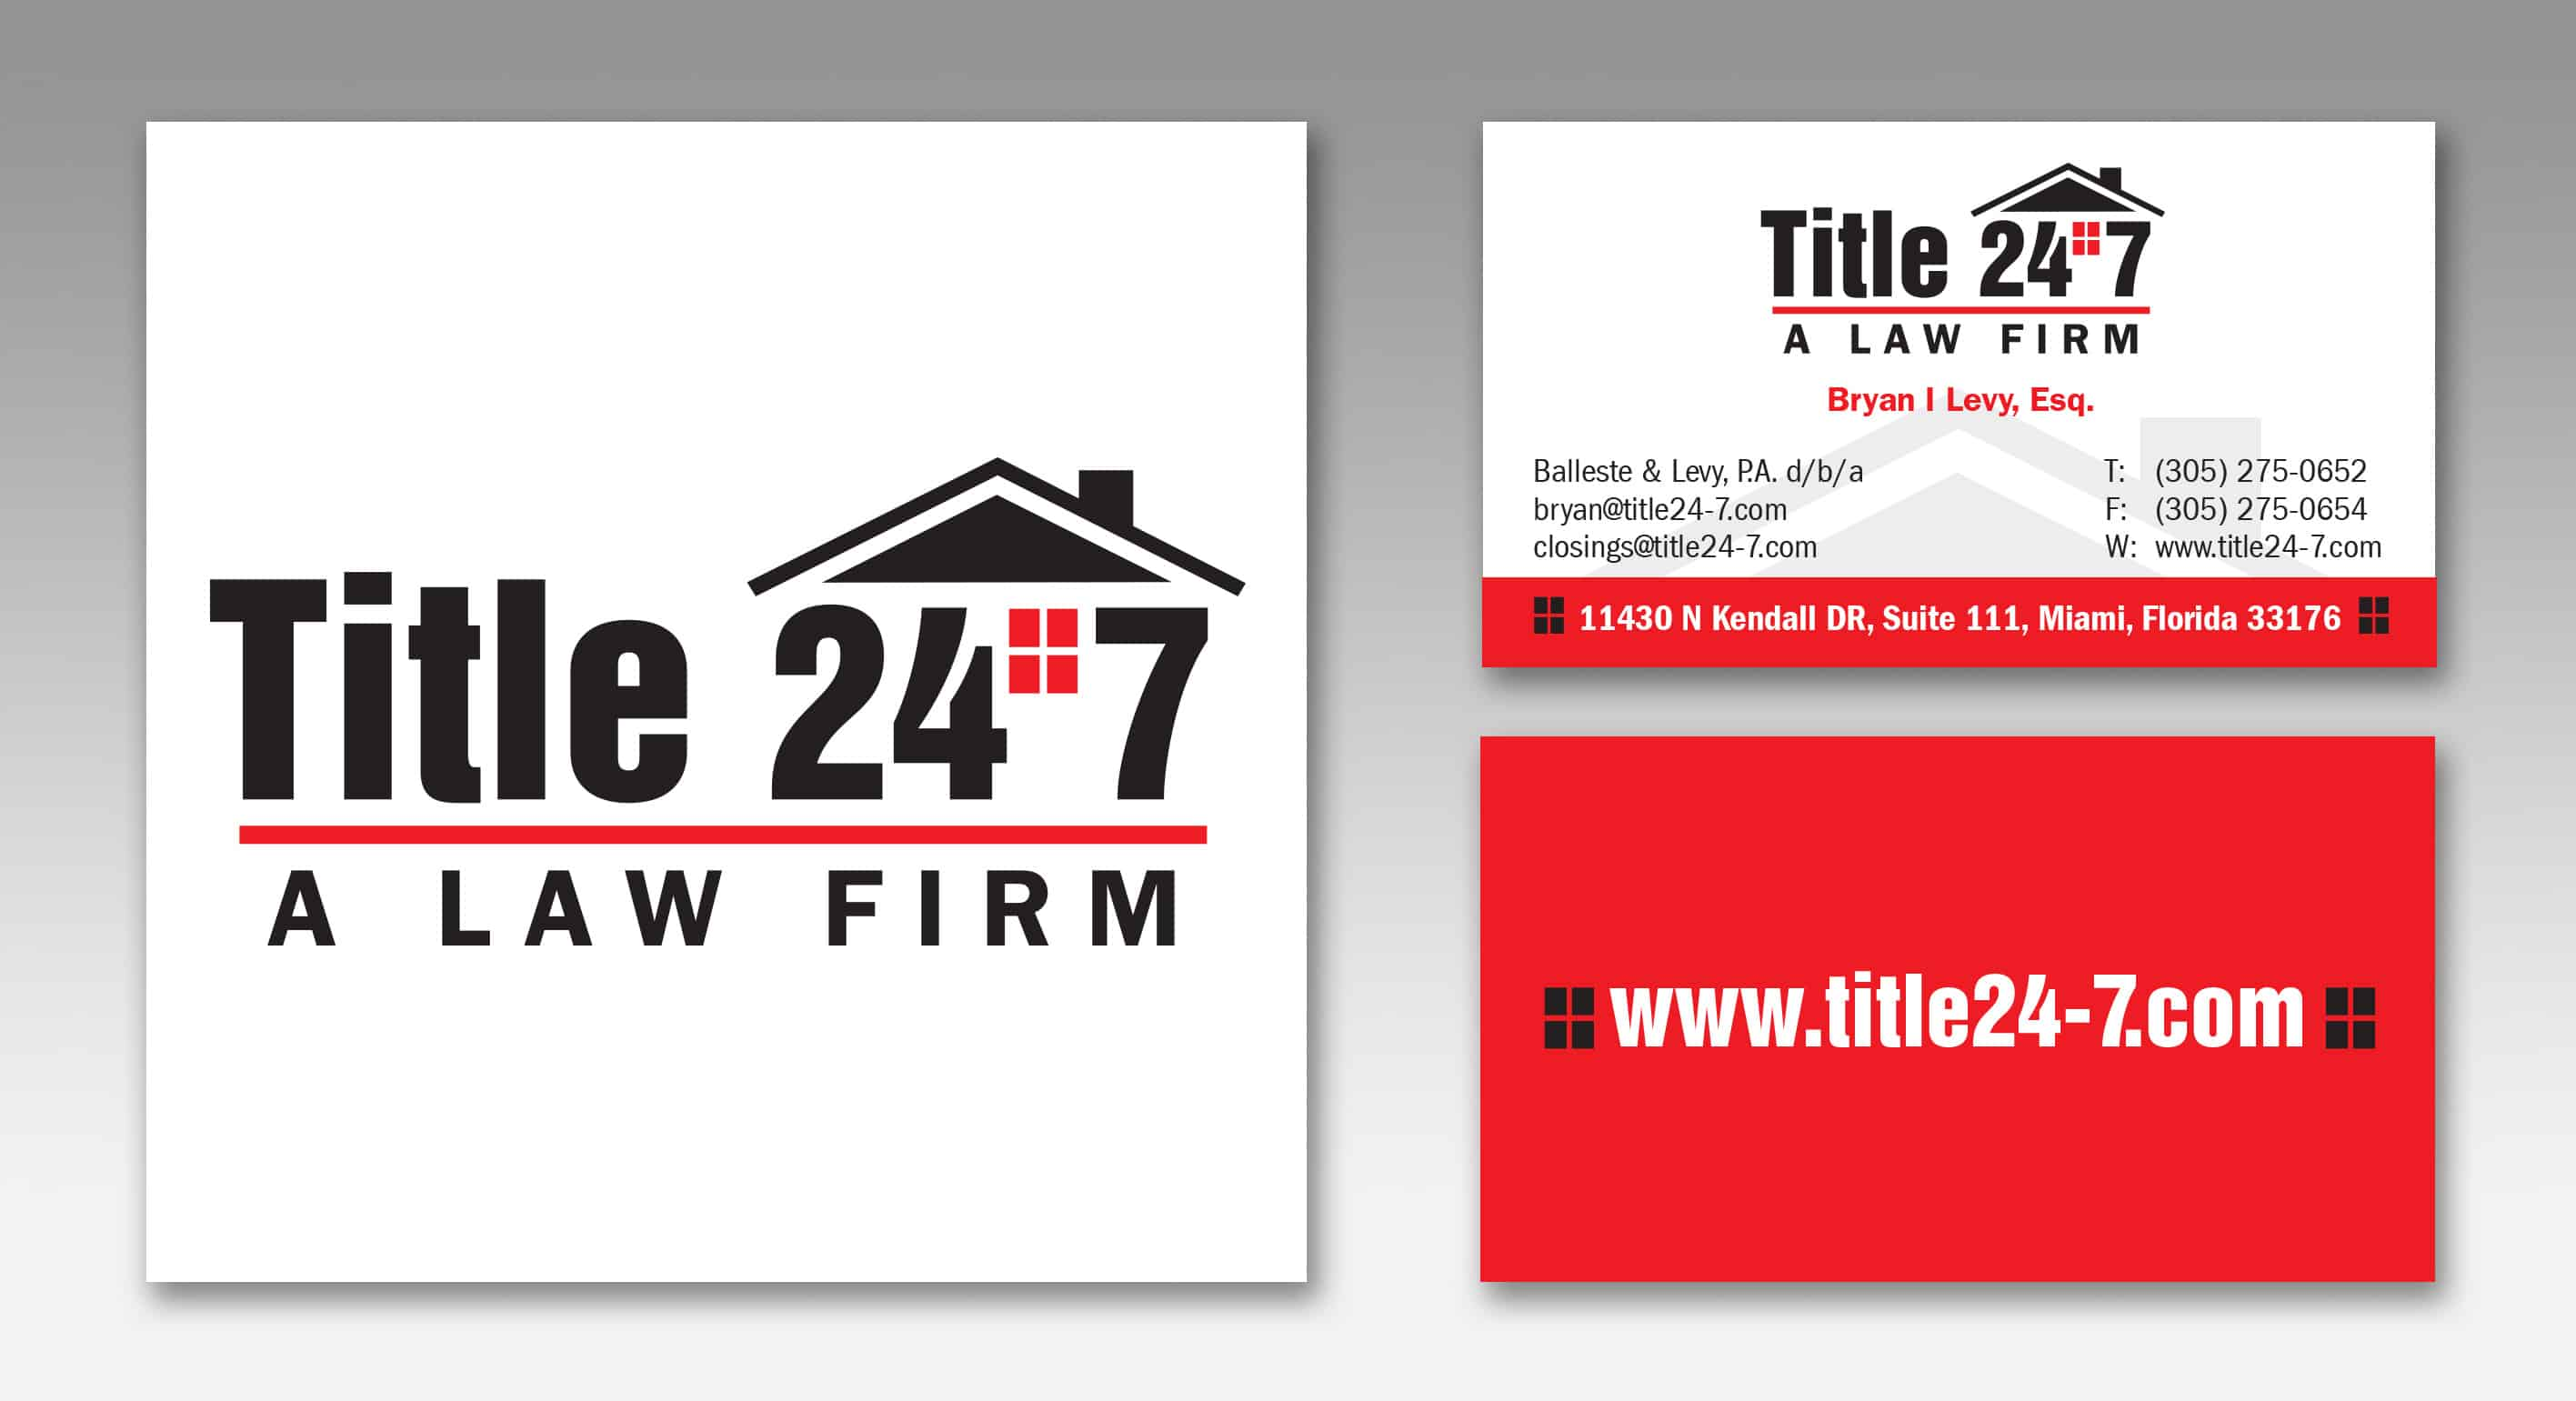 Title 24-7, A Law Firm